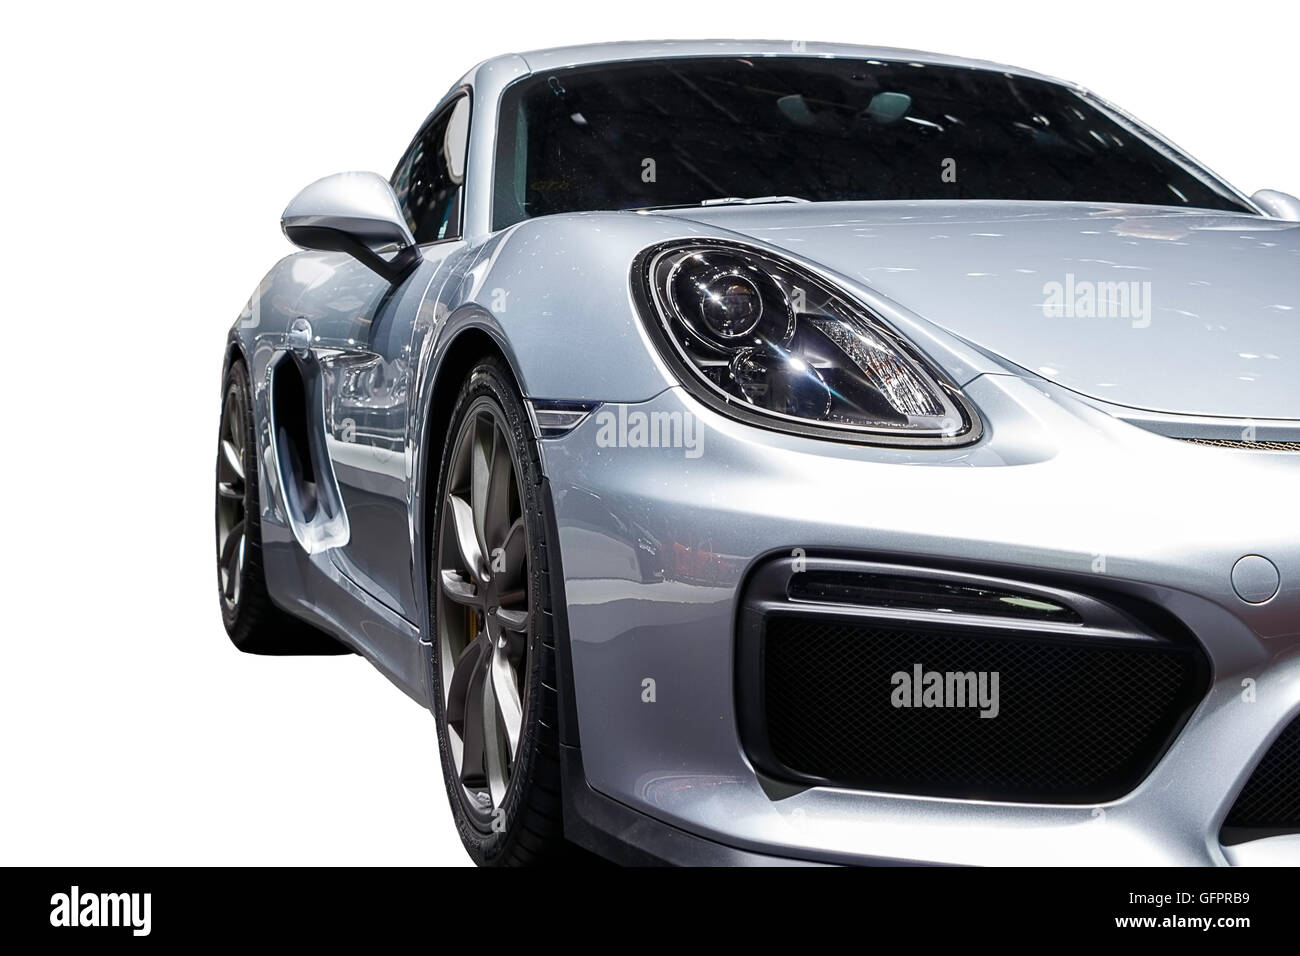 Abstract Shot Of A Porsche Cayman GT4, Isolated With Clipping Path Included    Stock Image